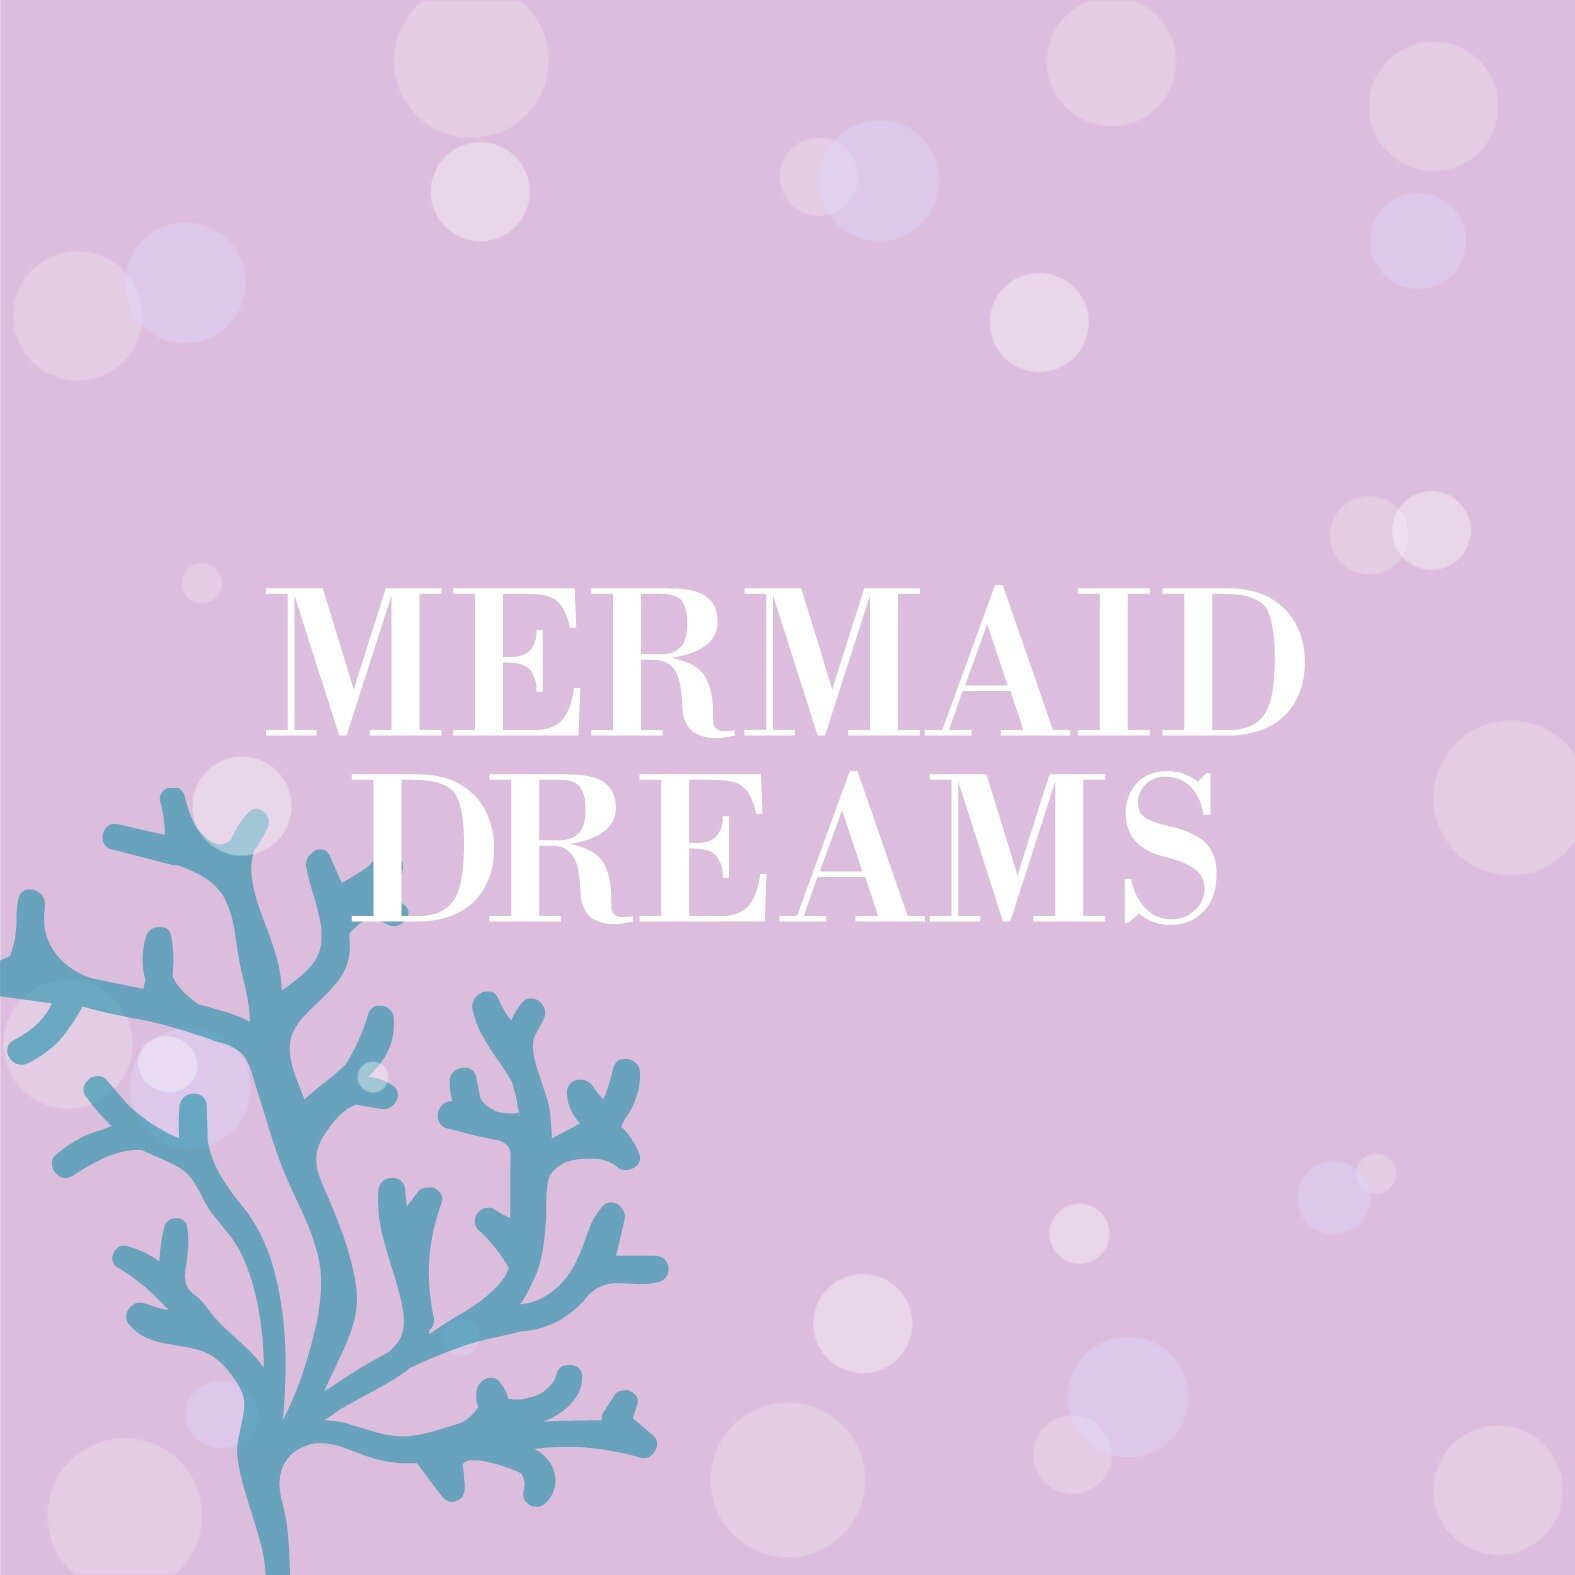 Mermaid dreams.jpg